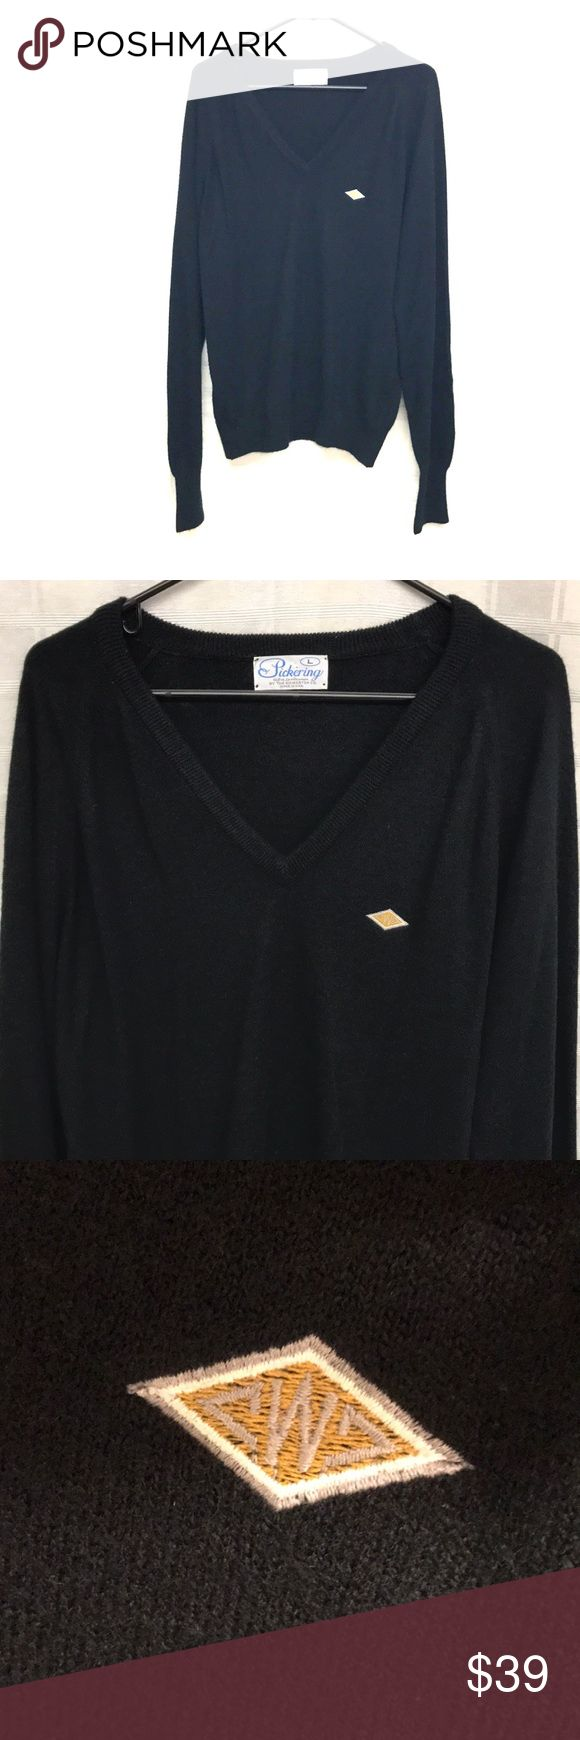 """Vintage Pickering V Neck Longsleeve Size Large. 100% Acrylic but is as soft as cashmere. Sweater has a W monogrammed inside of yellow diamond. Black. Armpit to armpit 23"""" Length 28"""" Pickering Sweaters V-Neck"""